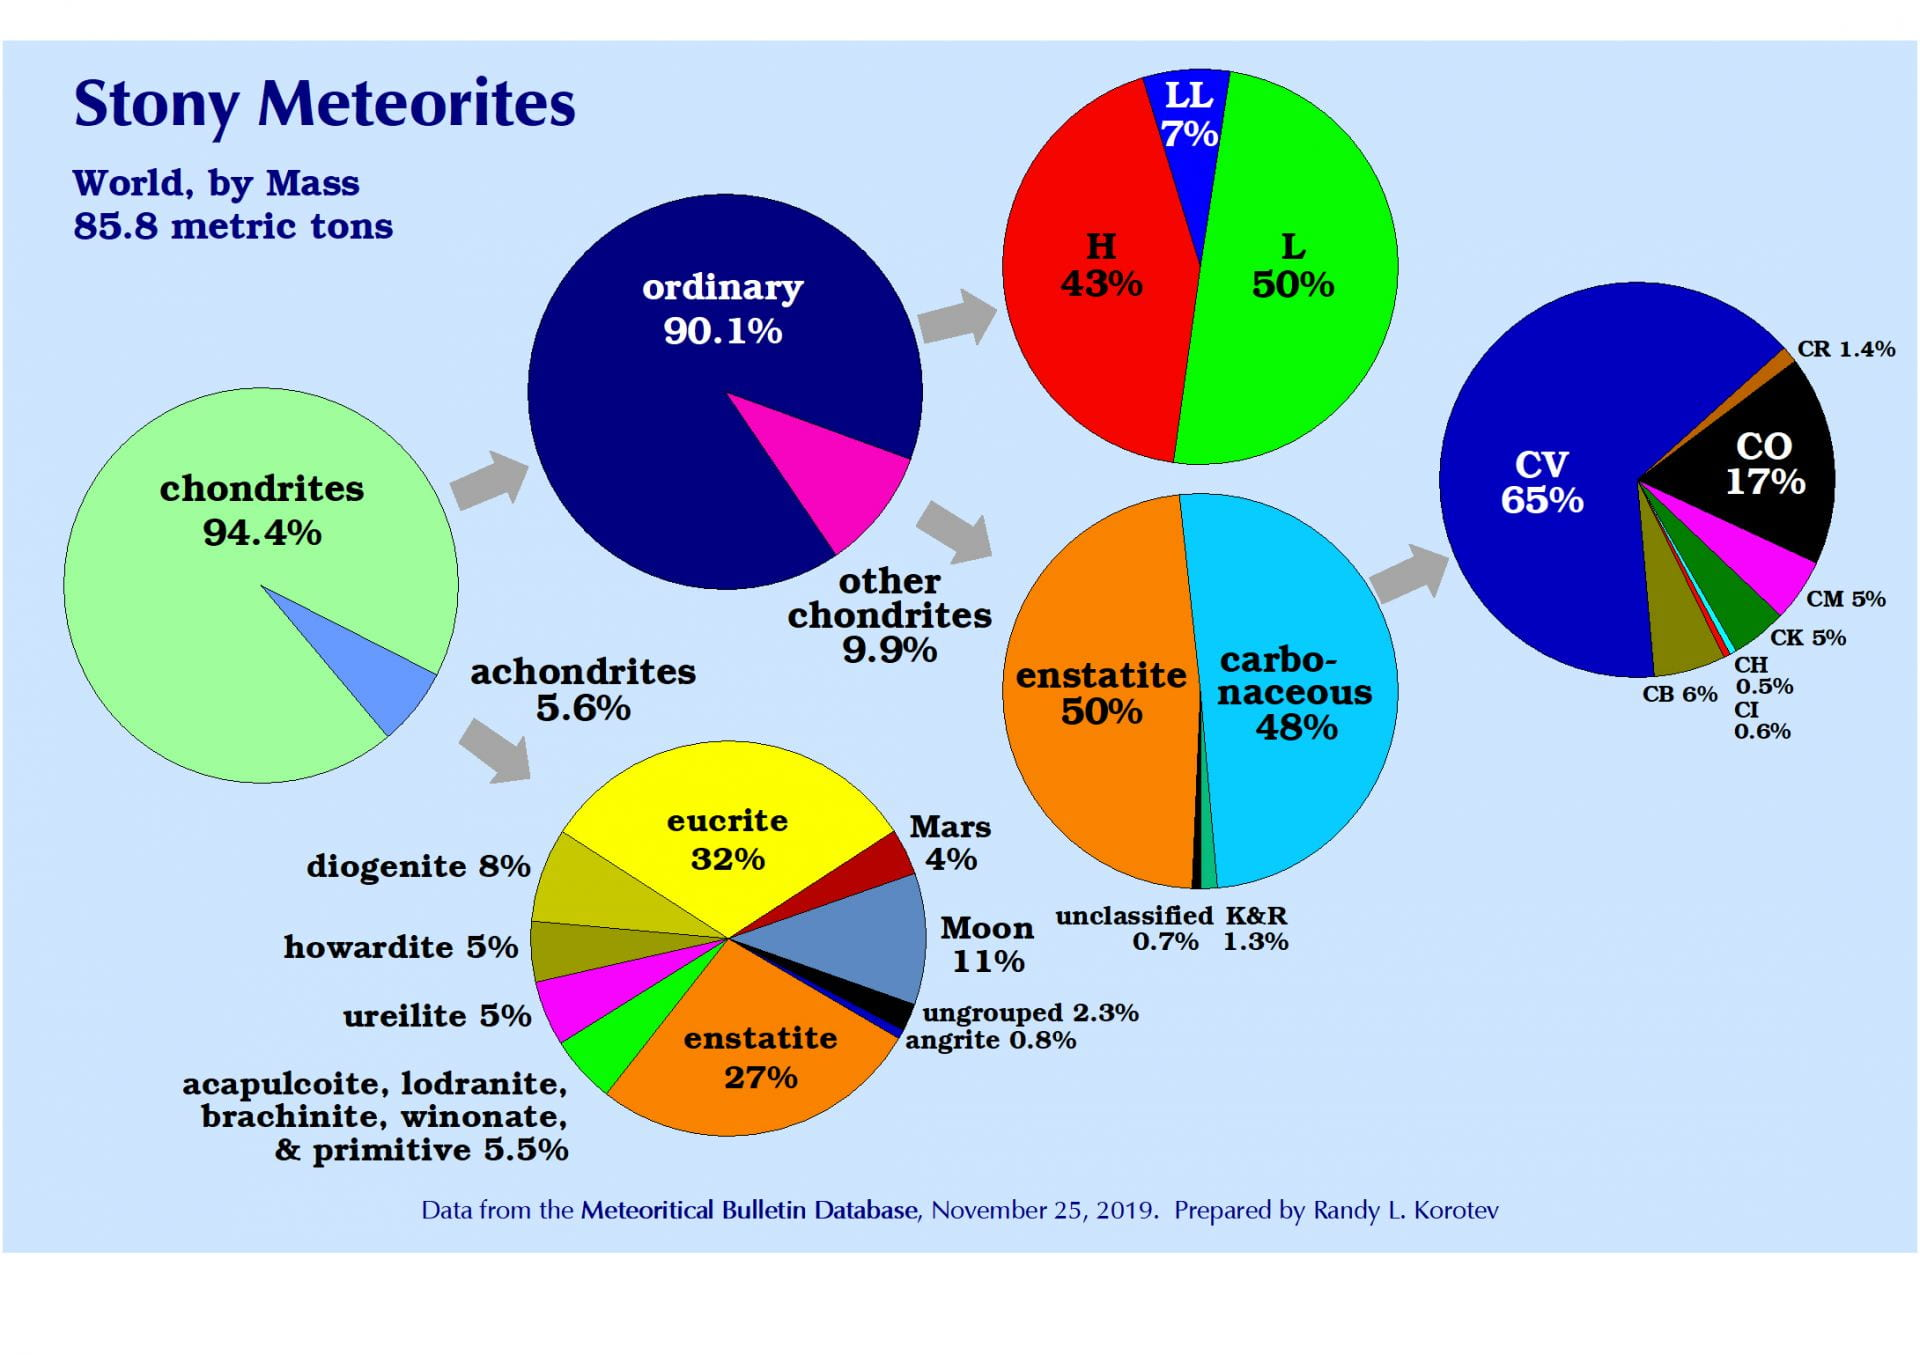 stony meteorite fractions by mass